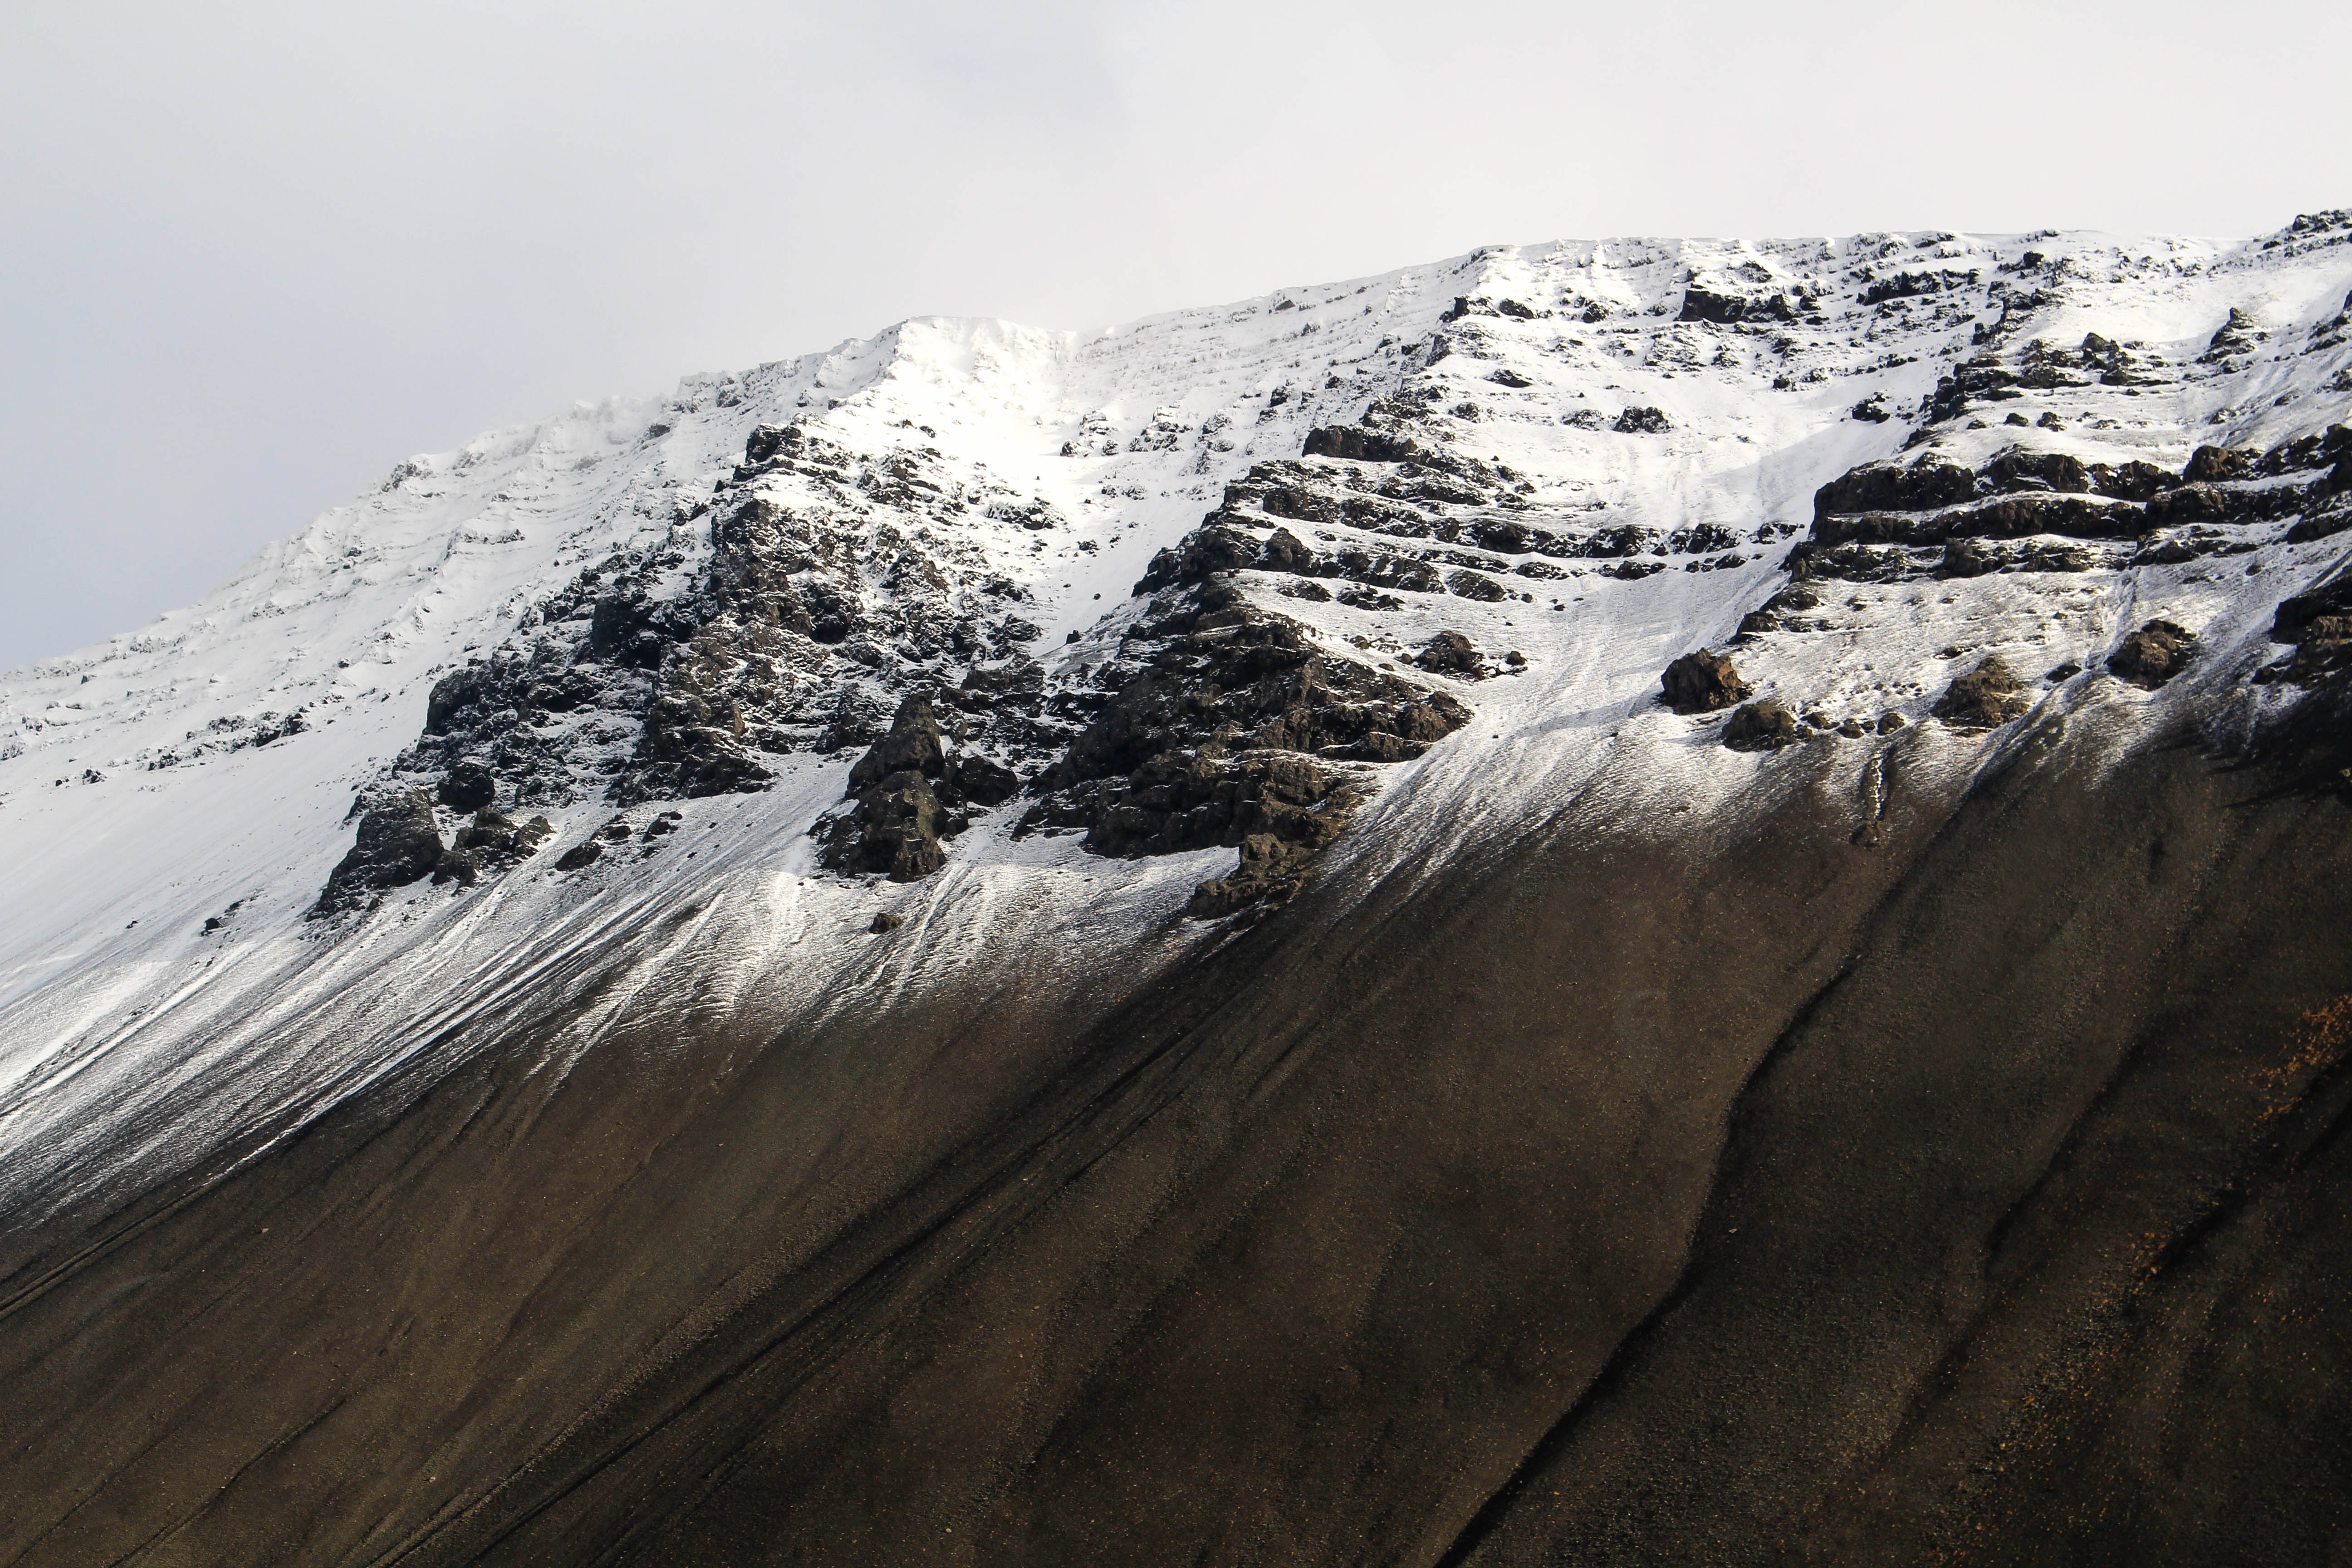 An eroded mountain slope covered in a snow blanket